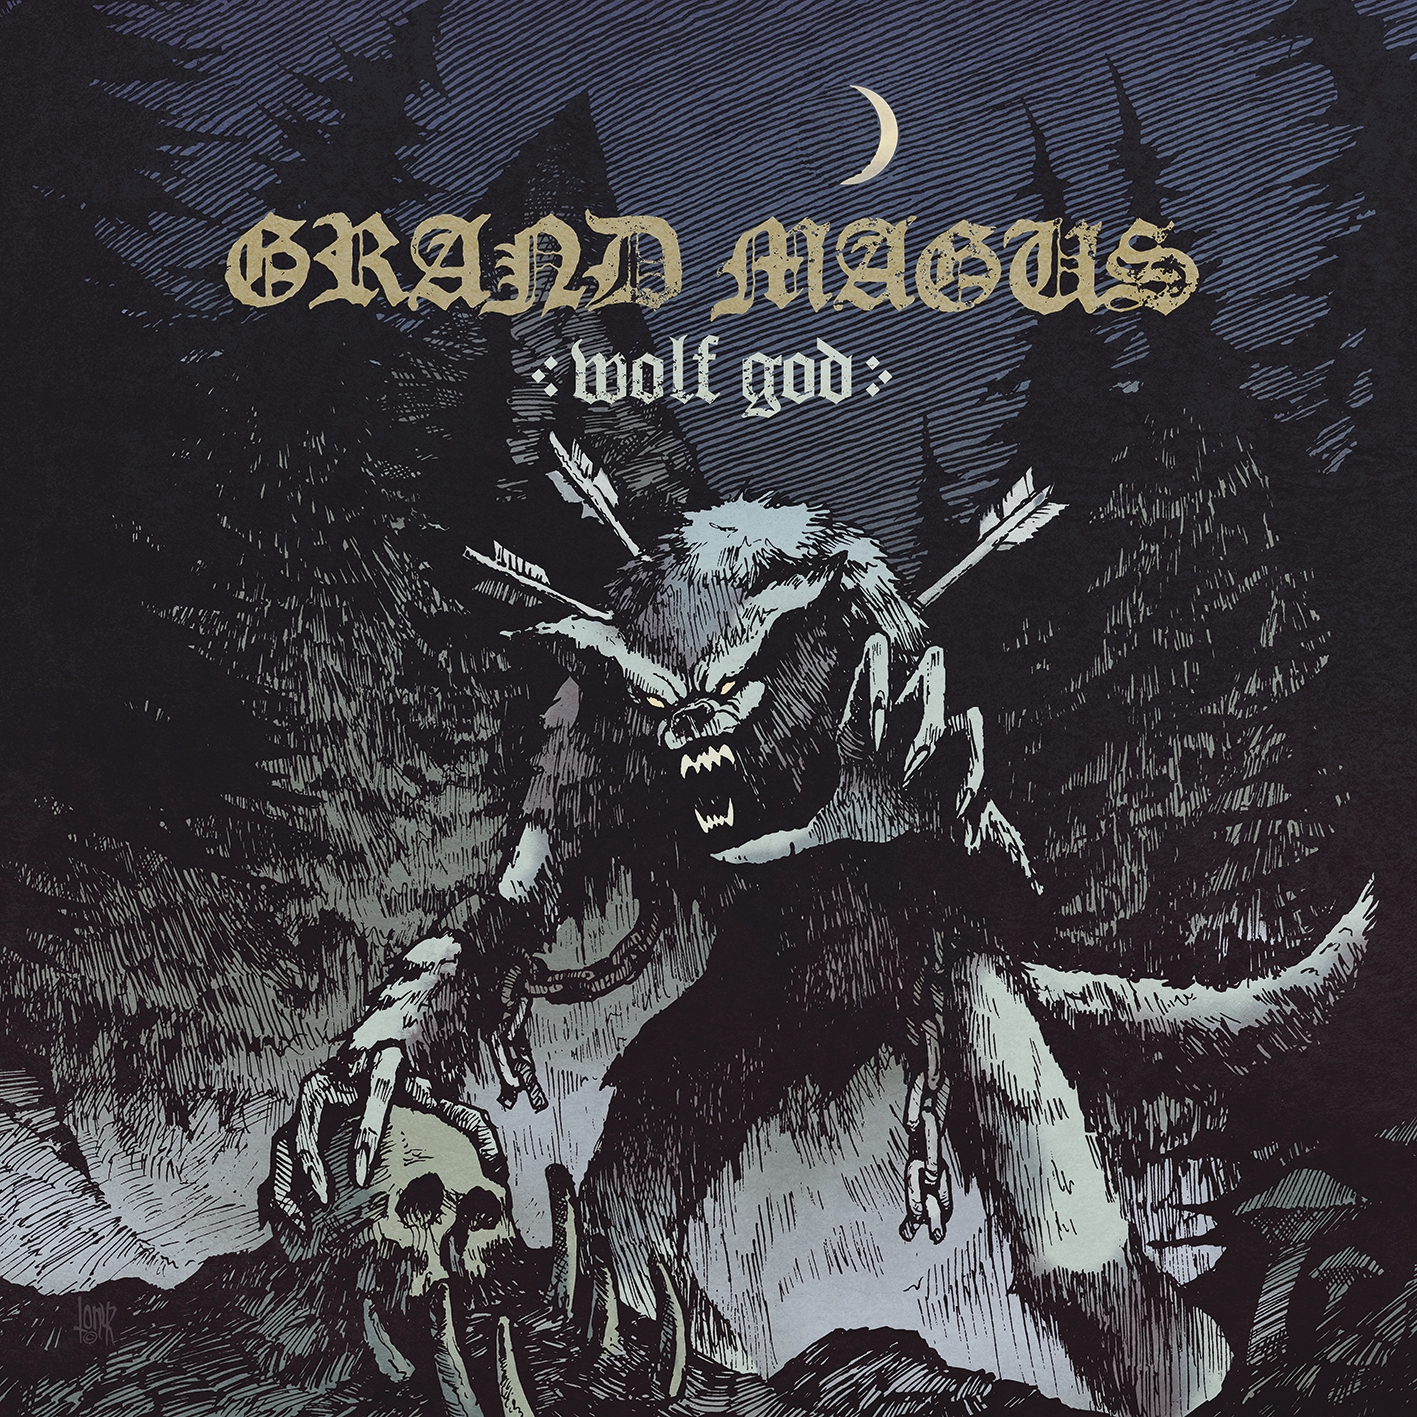 grand-magus-wolf-god-wikinger-im-wolfspelz-album-review